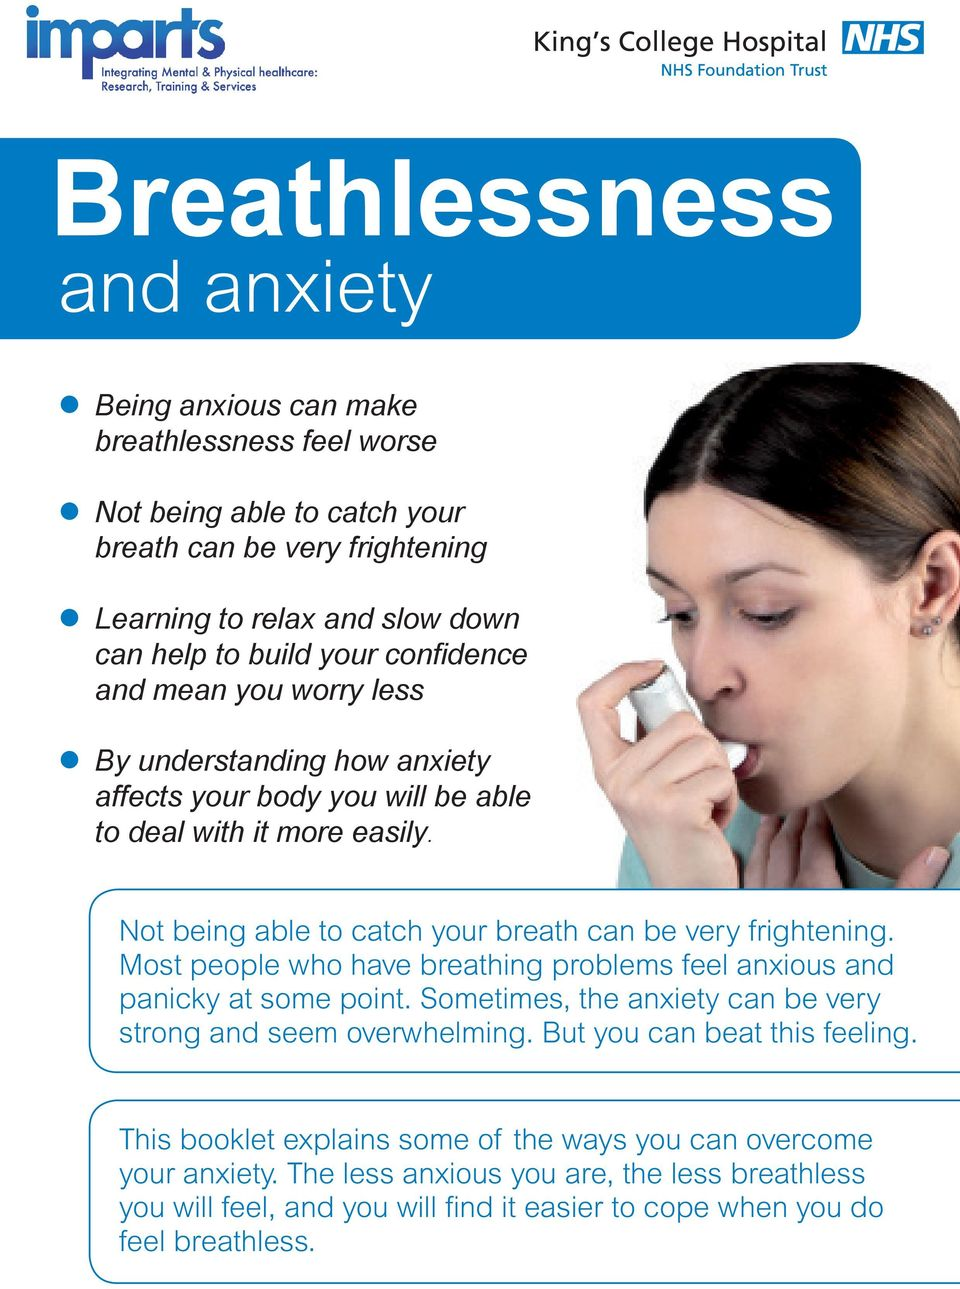 Not being able to catch your breath can be very frightening. Most people who have breathing problems feel anxious and panicky at some point.